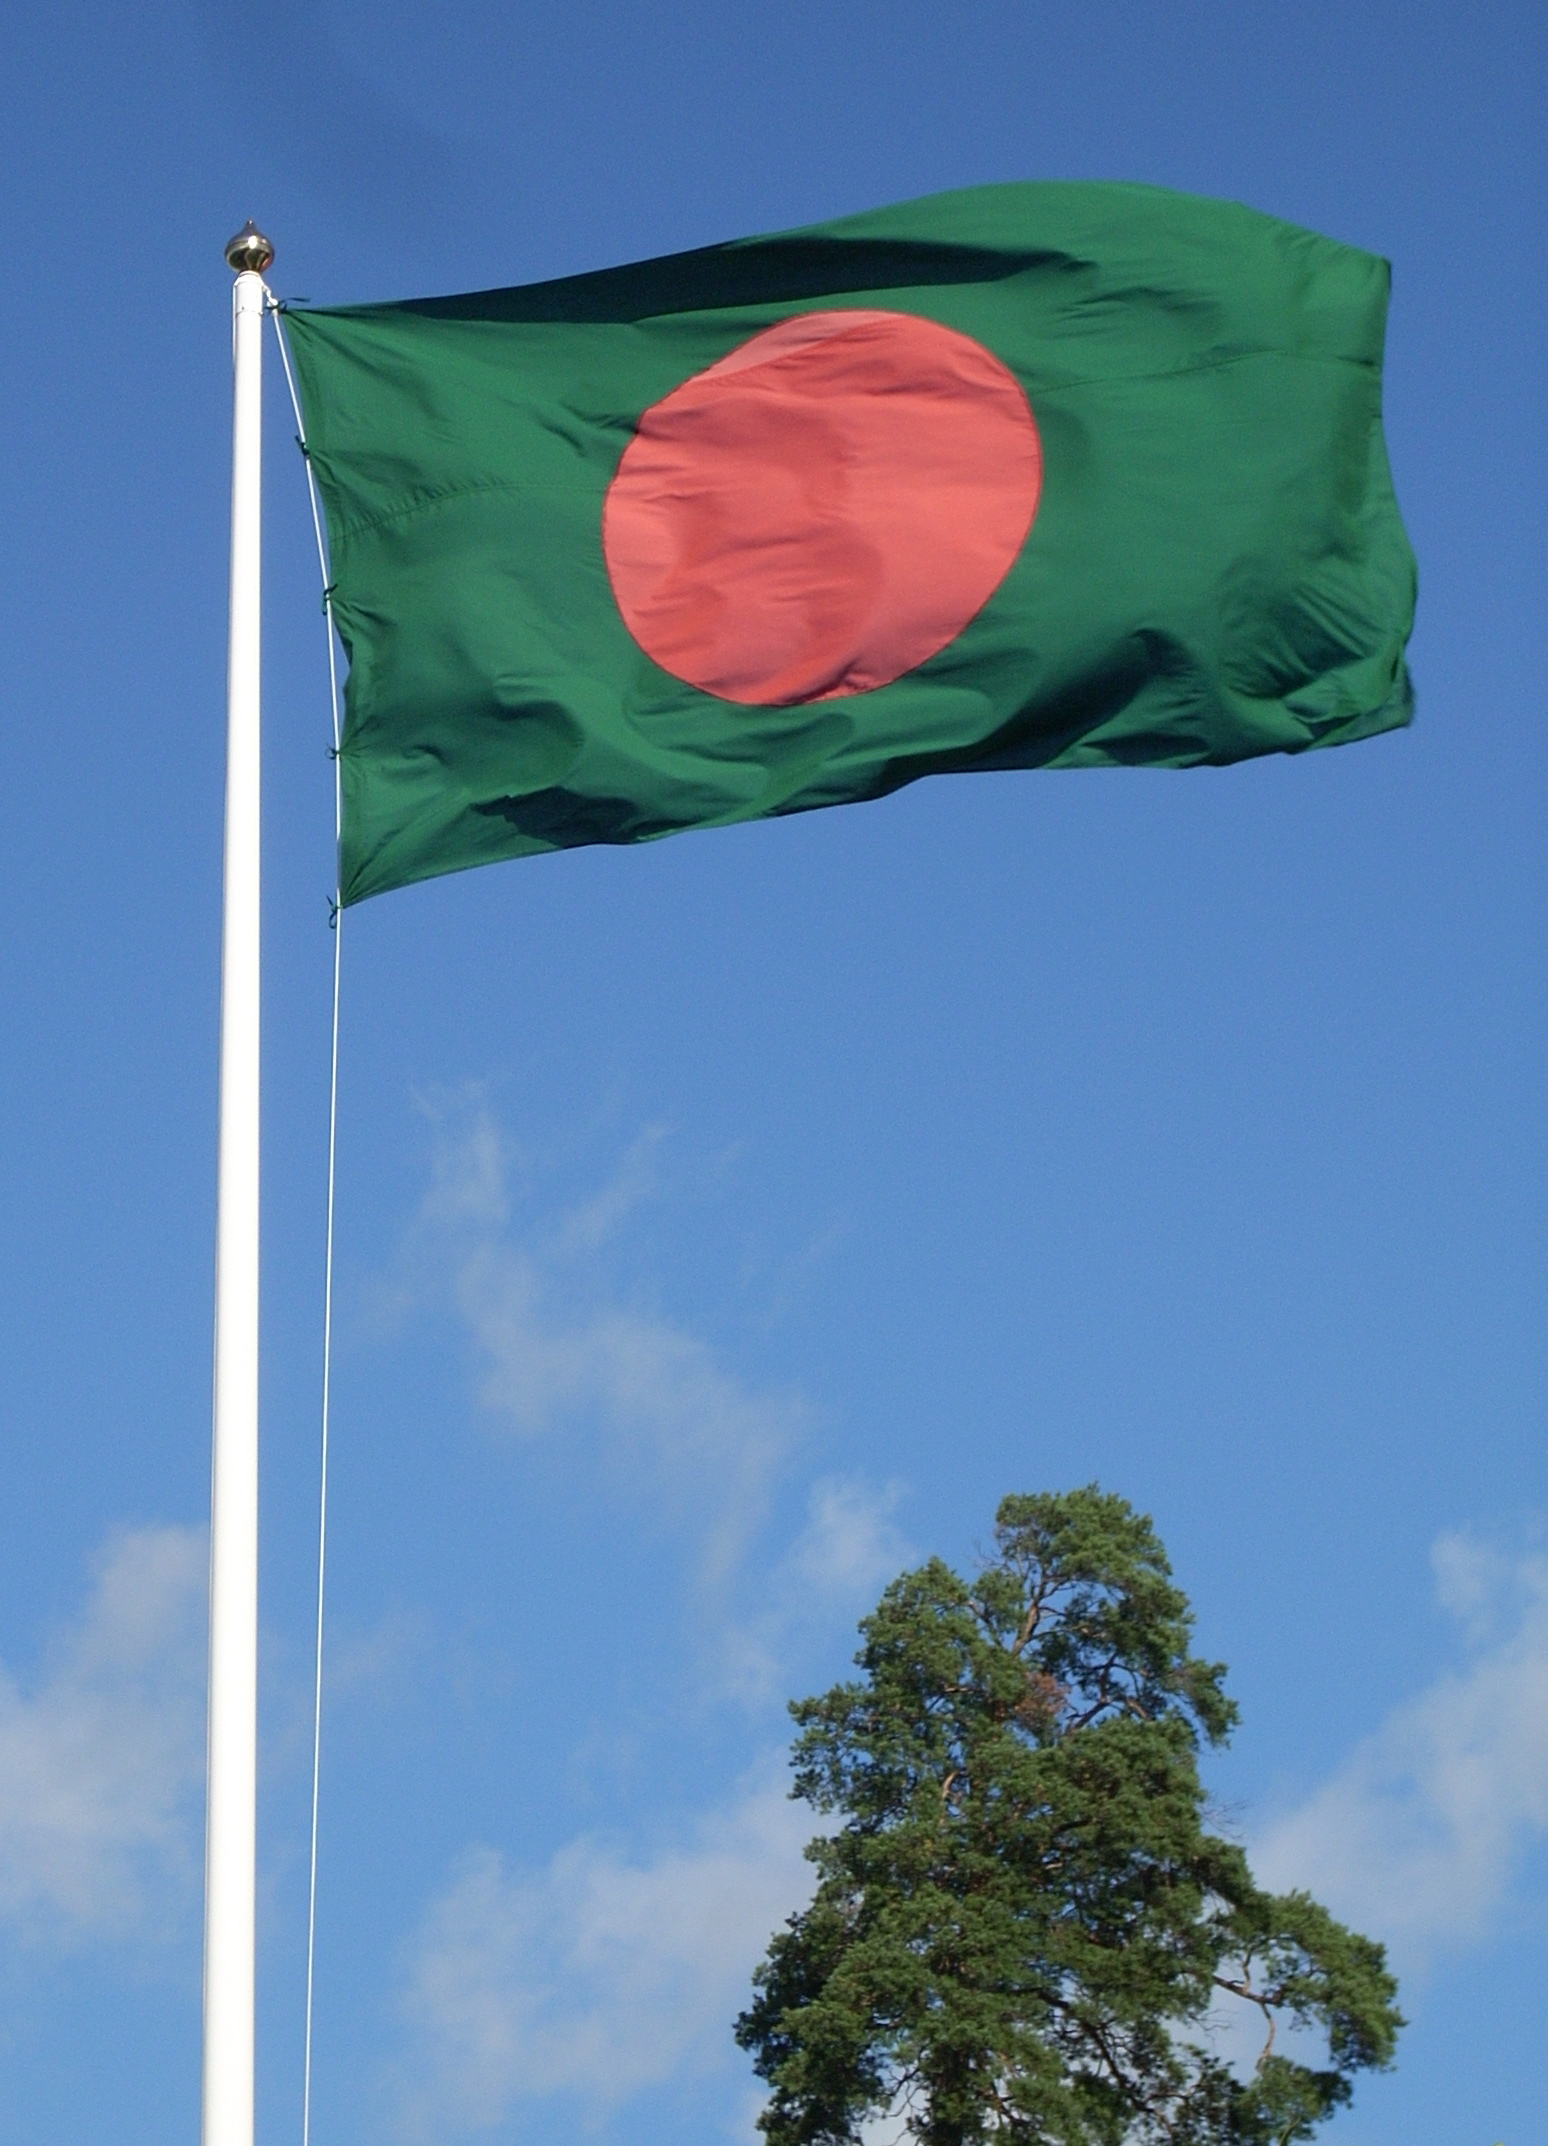 http://upload.wikimedia.org/wikipedia/commons/6/68/Flag_of_Bangladesh_and_tree.jpg